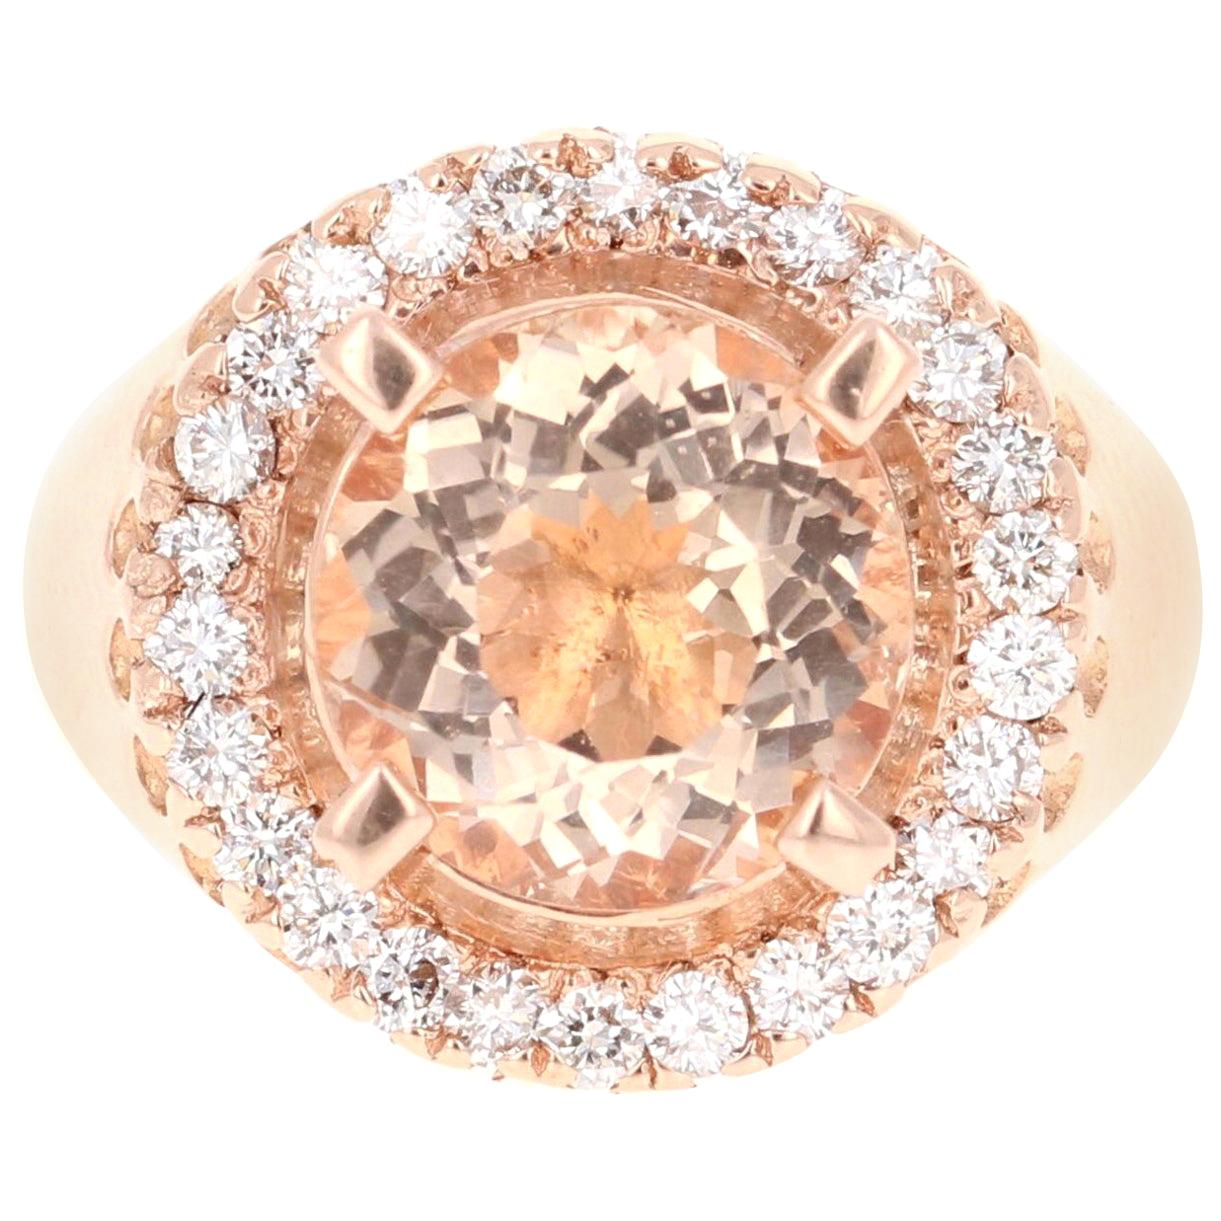 4.61 Carat Morganite Diamond 14 Karat Rose Gold Cocktail Ring